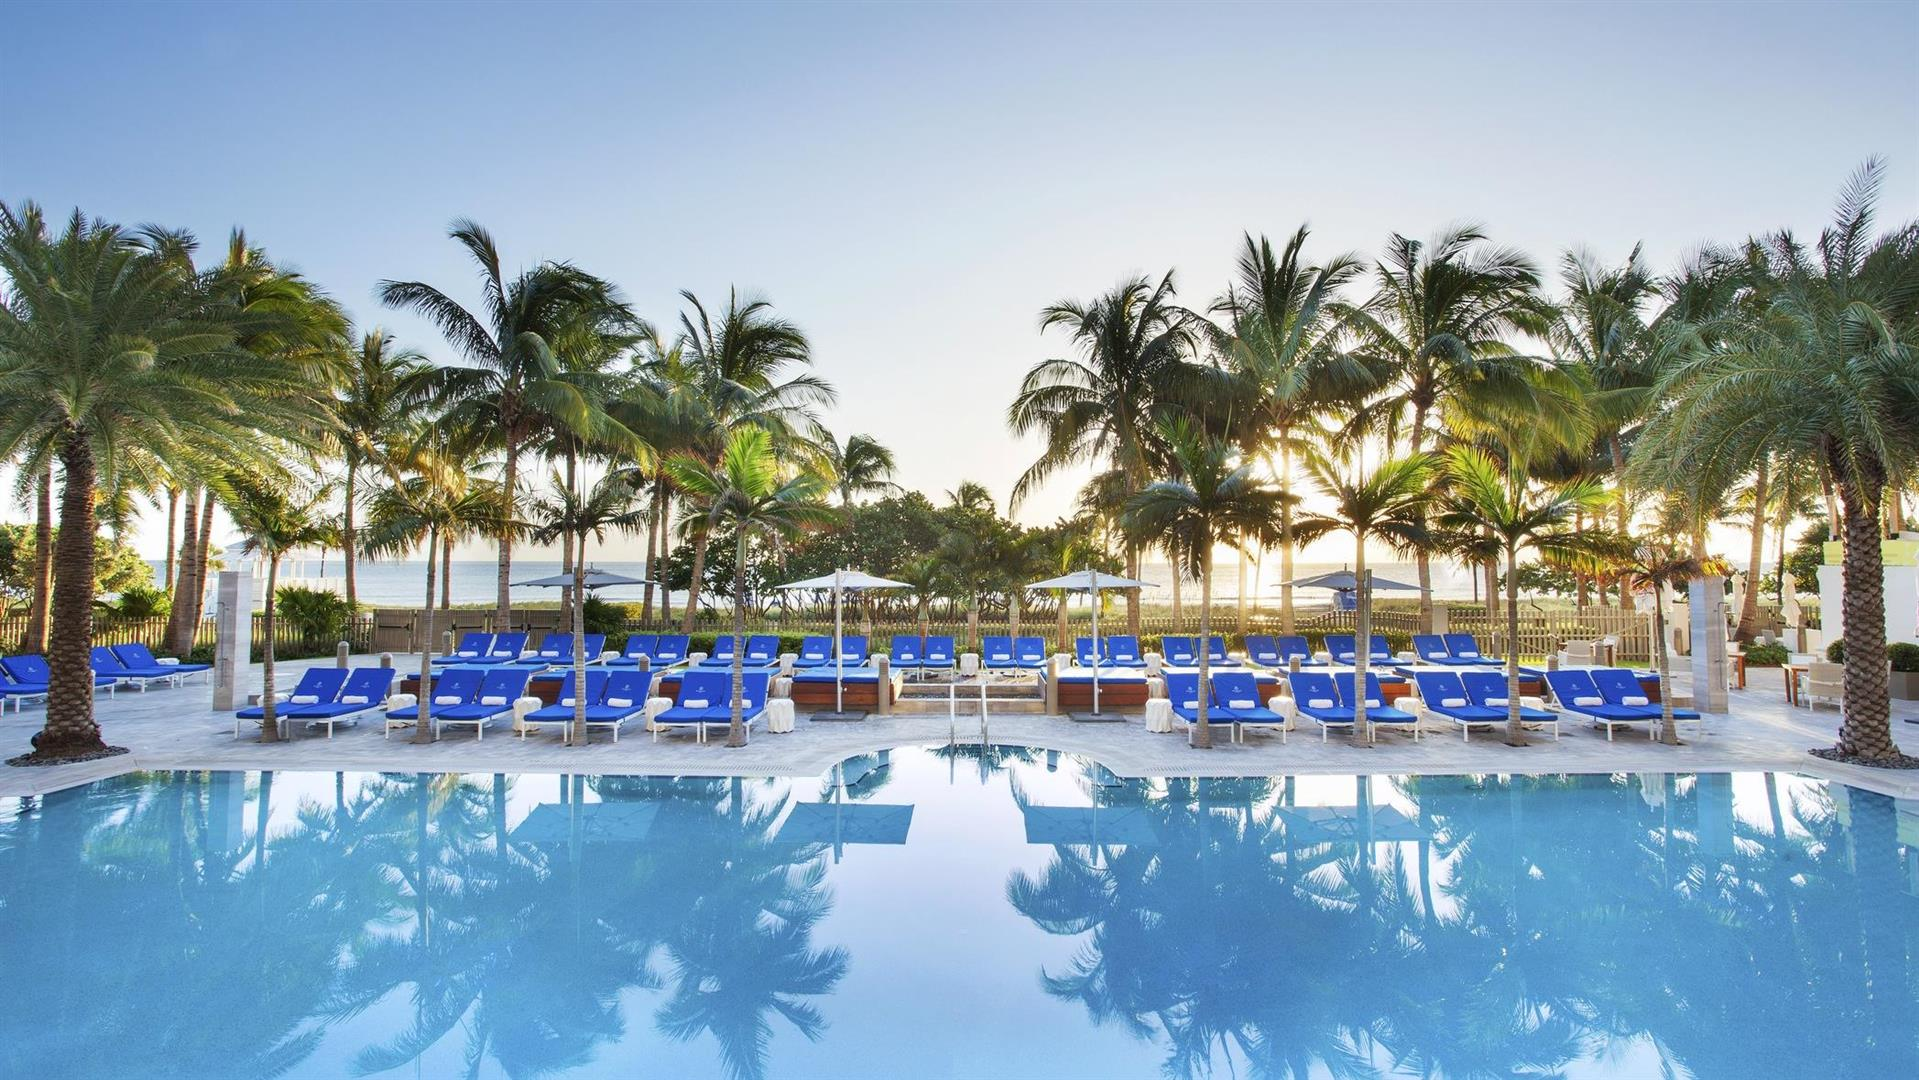 Meetings And Events At The St Regis Bal Harbour Resort Bal Harbour Fl Us